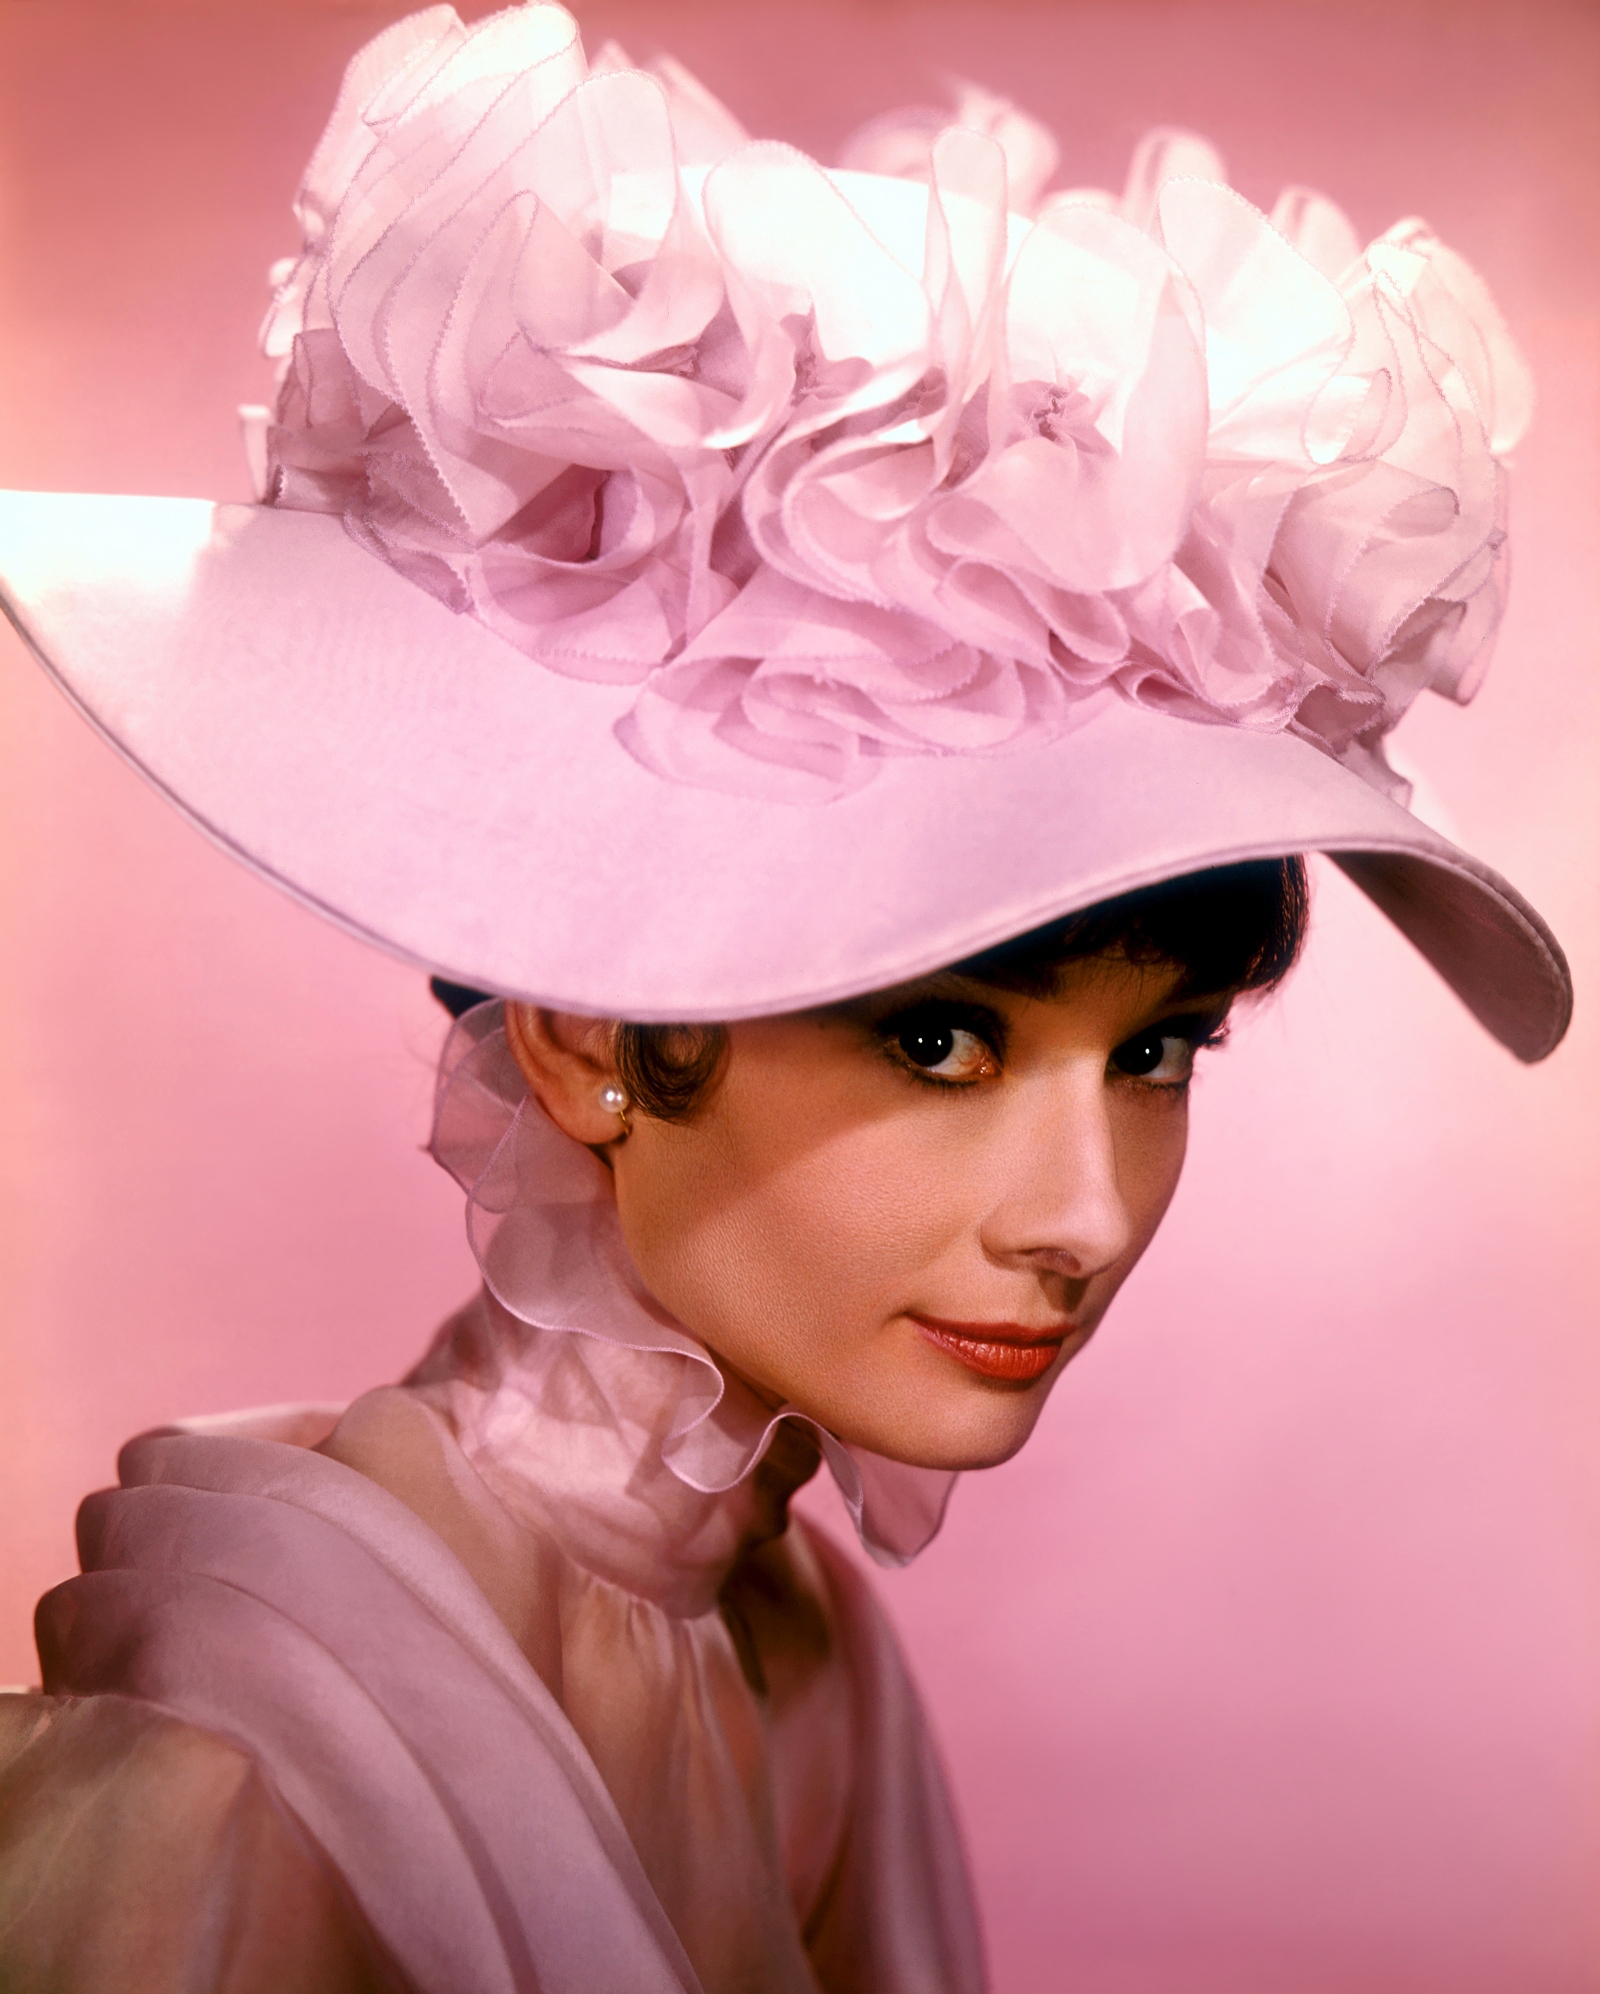 Audrey hepburn annex2 my fair lady mightylinksfo